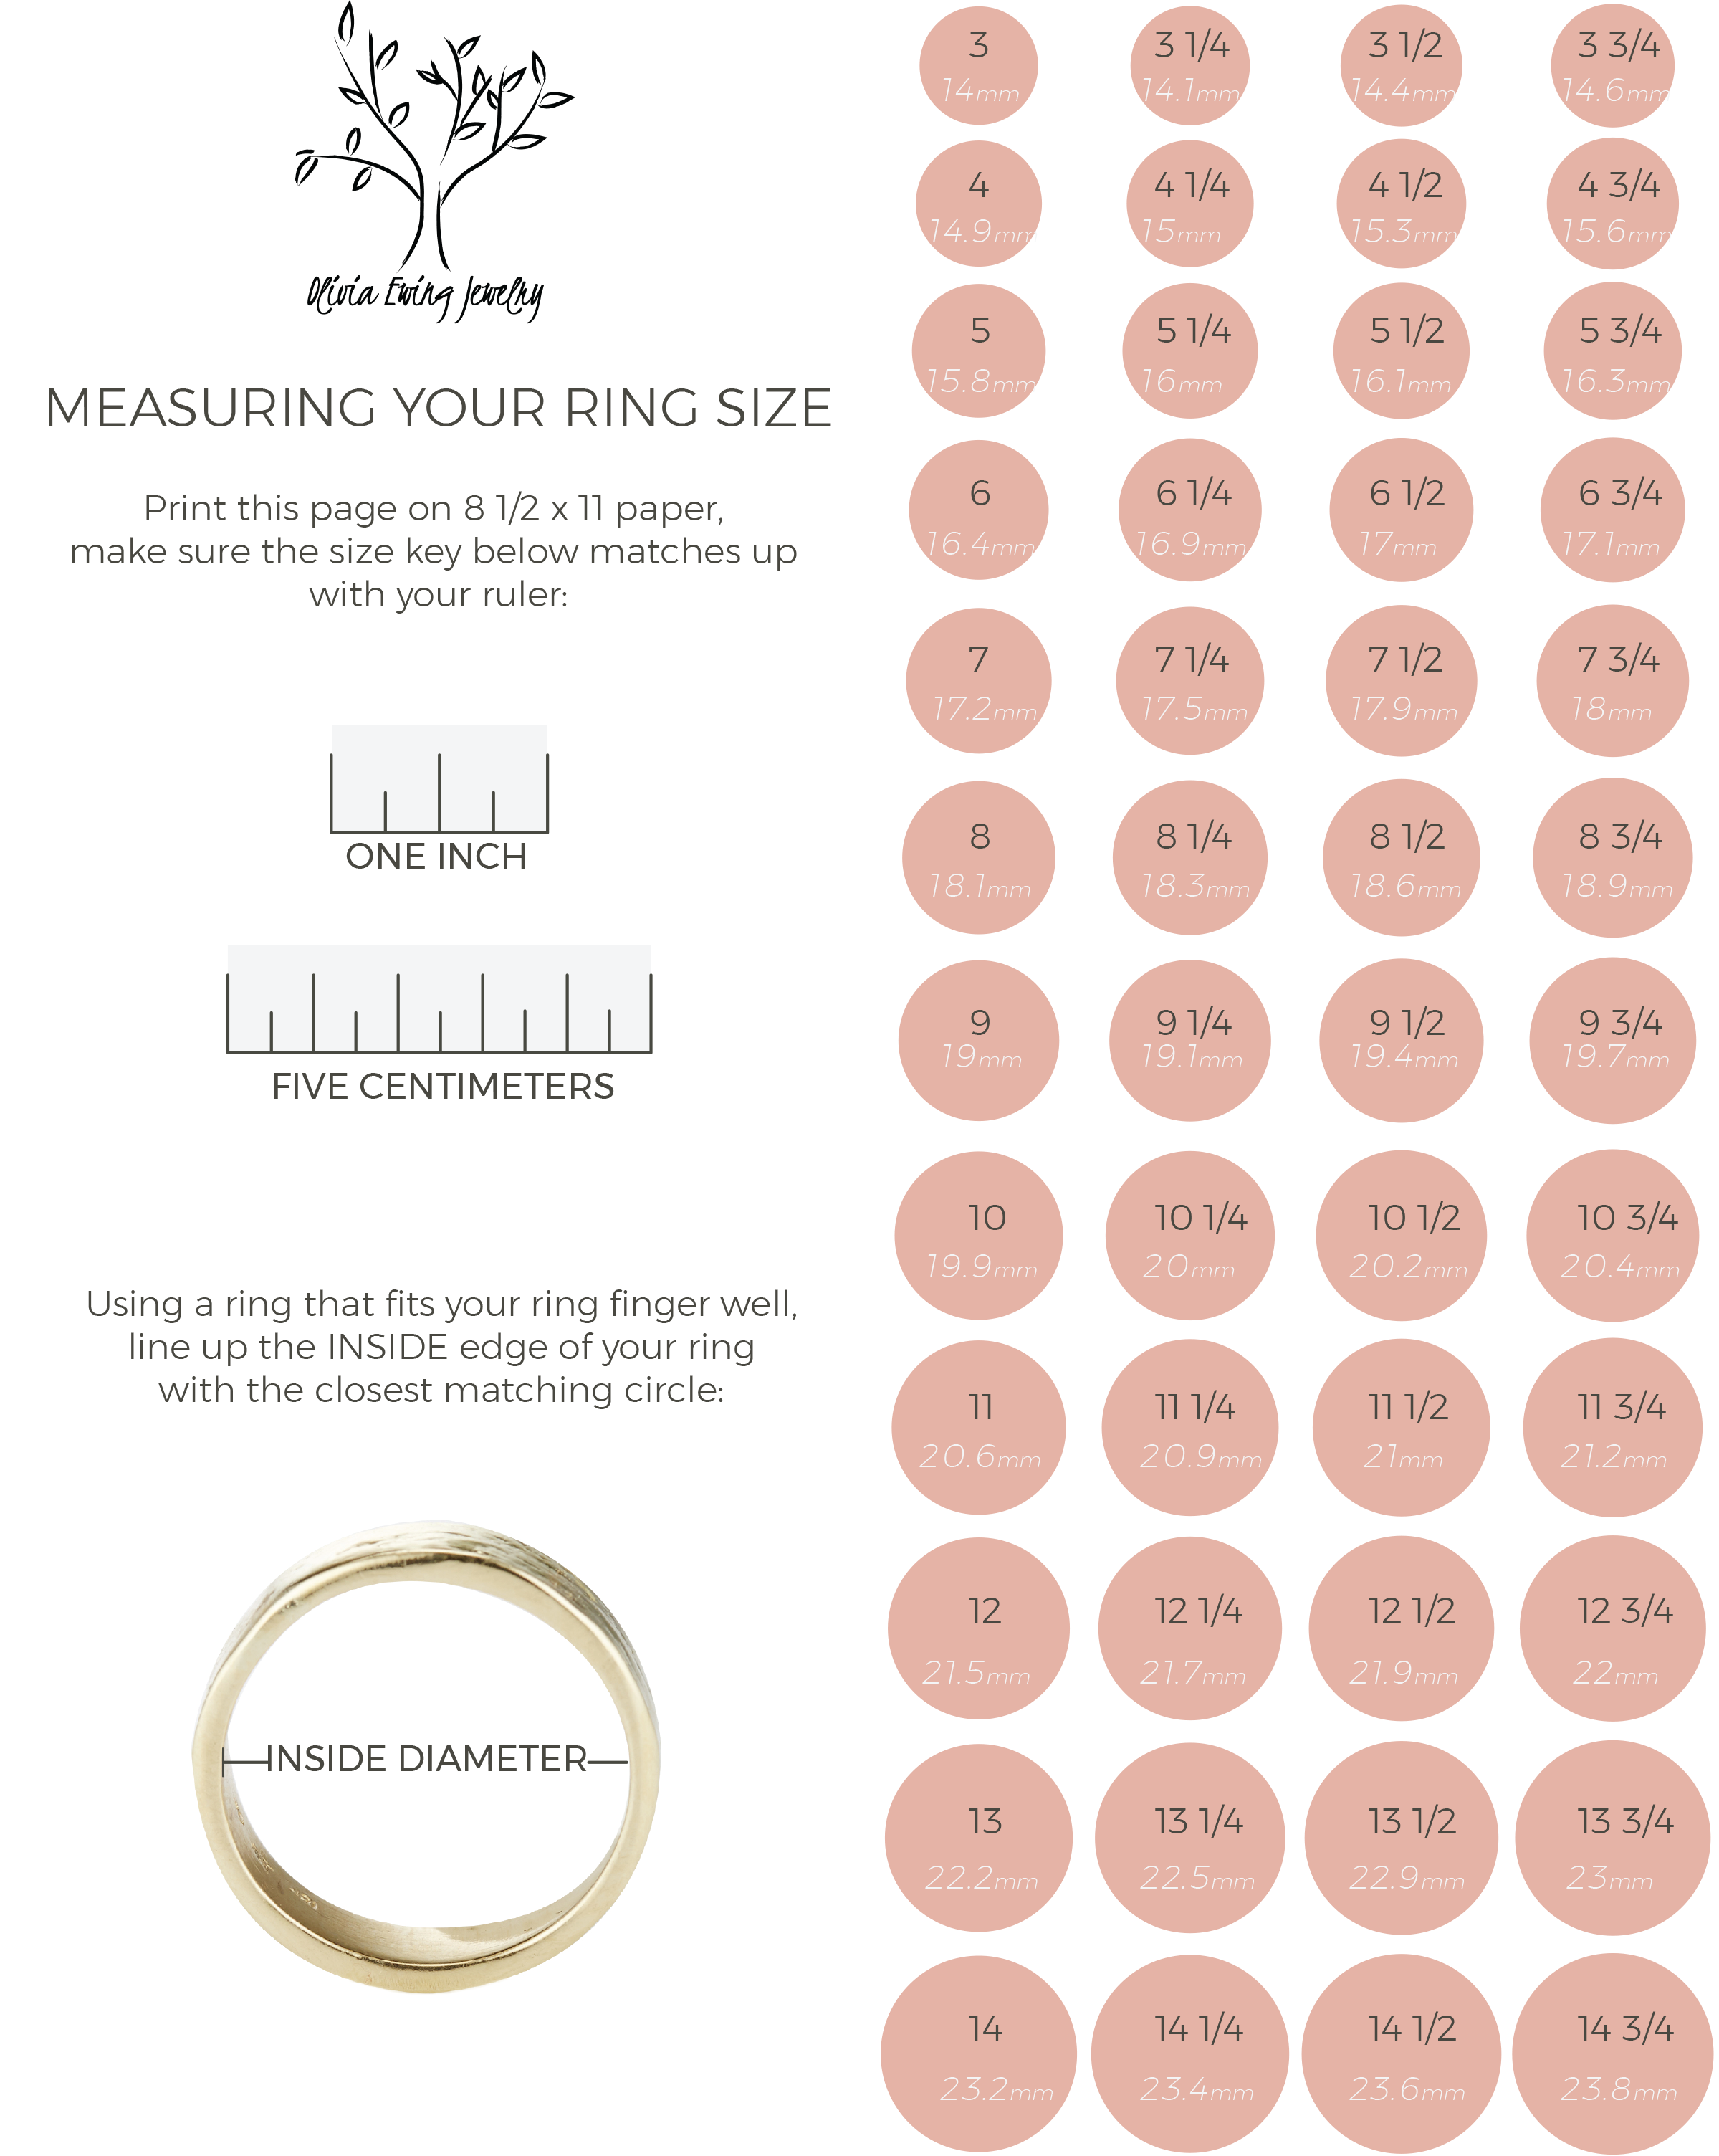 measuring-your-ring-size-olivia-ewing-jewelry.png